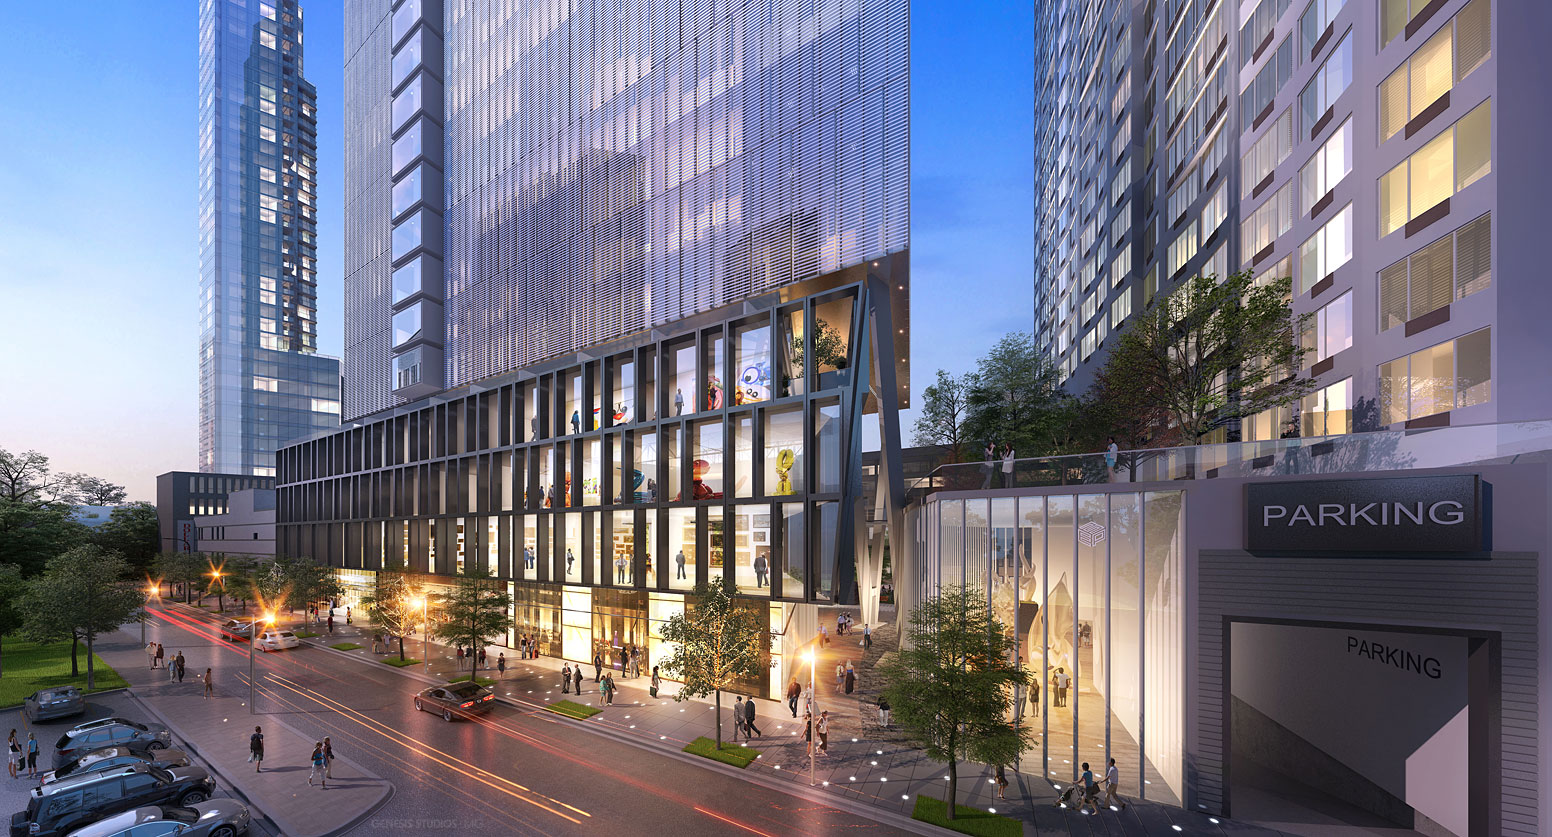 616023 Digital Photorealistic Architectural Renderings of Fulton Tower Parking Garage for Zoning & Code Consulting Group